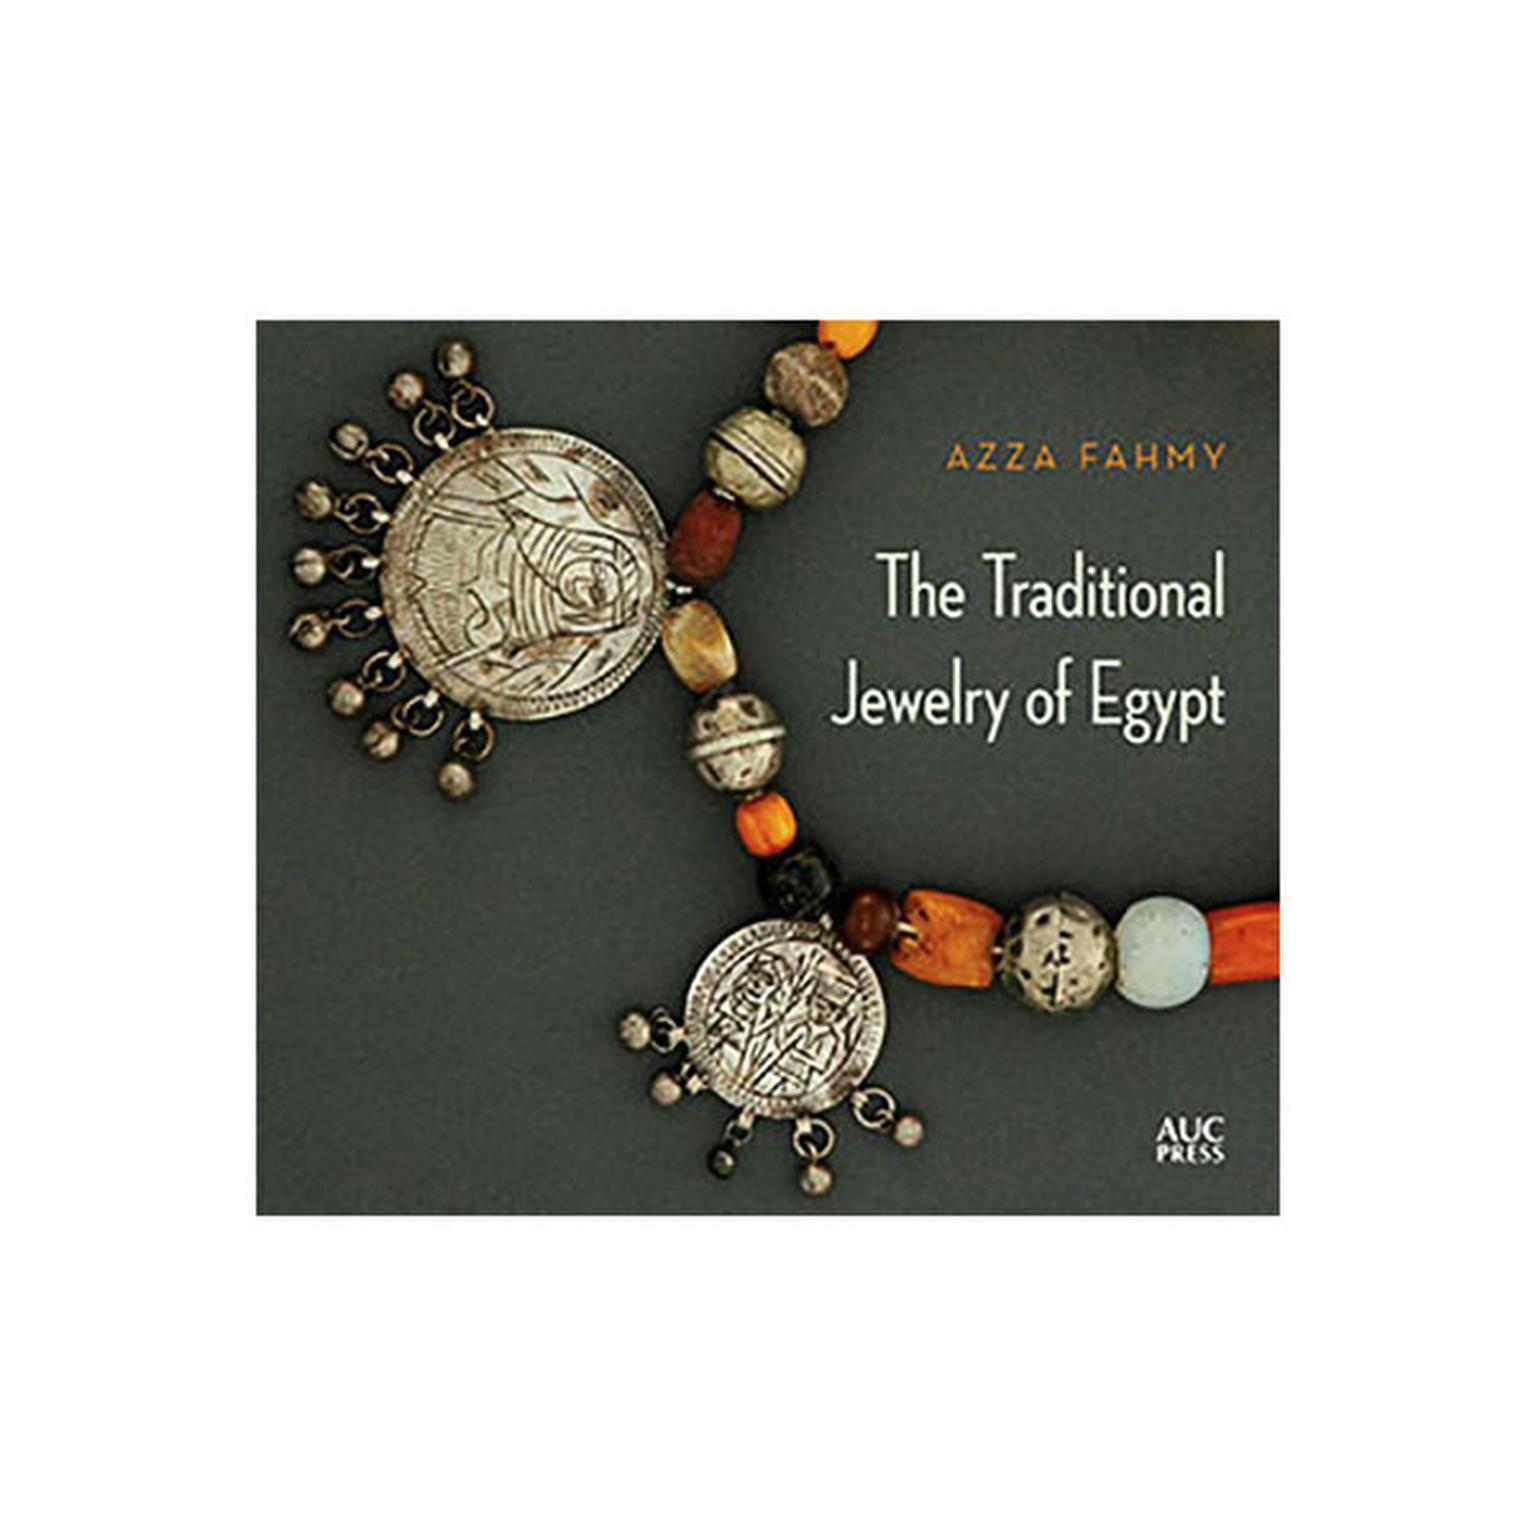 The Traditional Jewelry of Egypt, Azza Fahmy